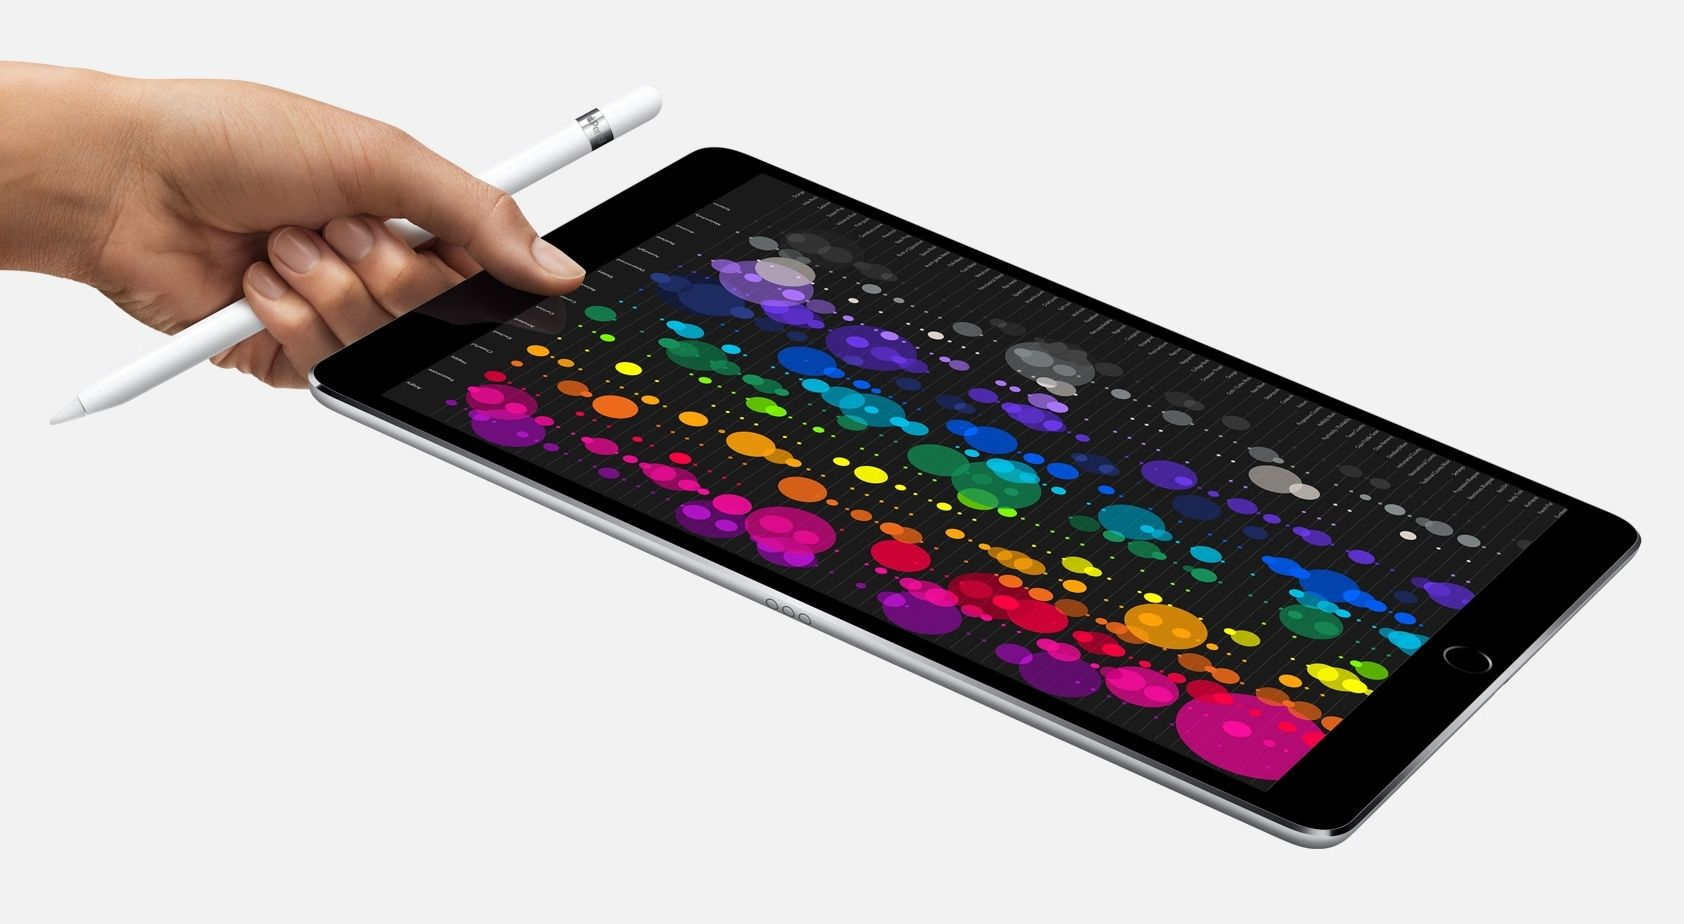 wwdc 2017 apple ipad pro 10 5 officially unveiled with a10x fusion cpu and ois camera the 12 9. Black Bedroom Furniture Sets. Home Design Ideas